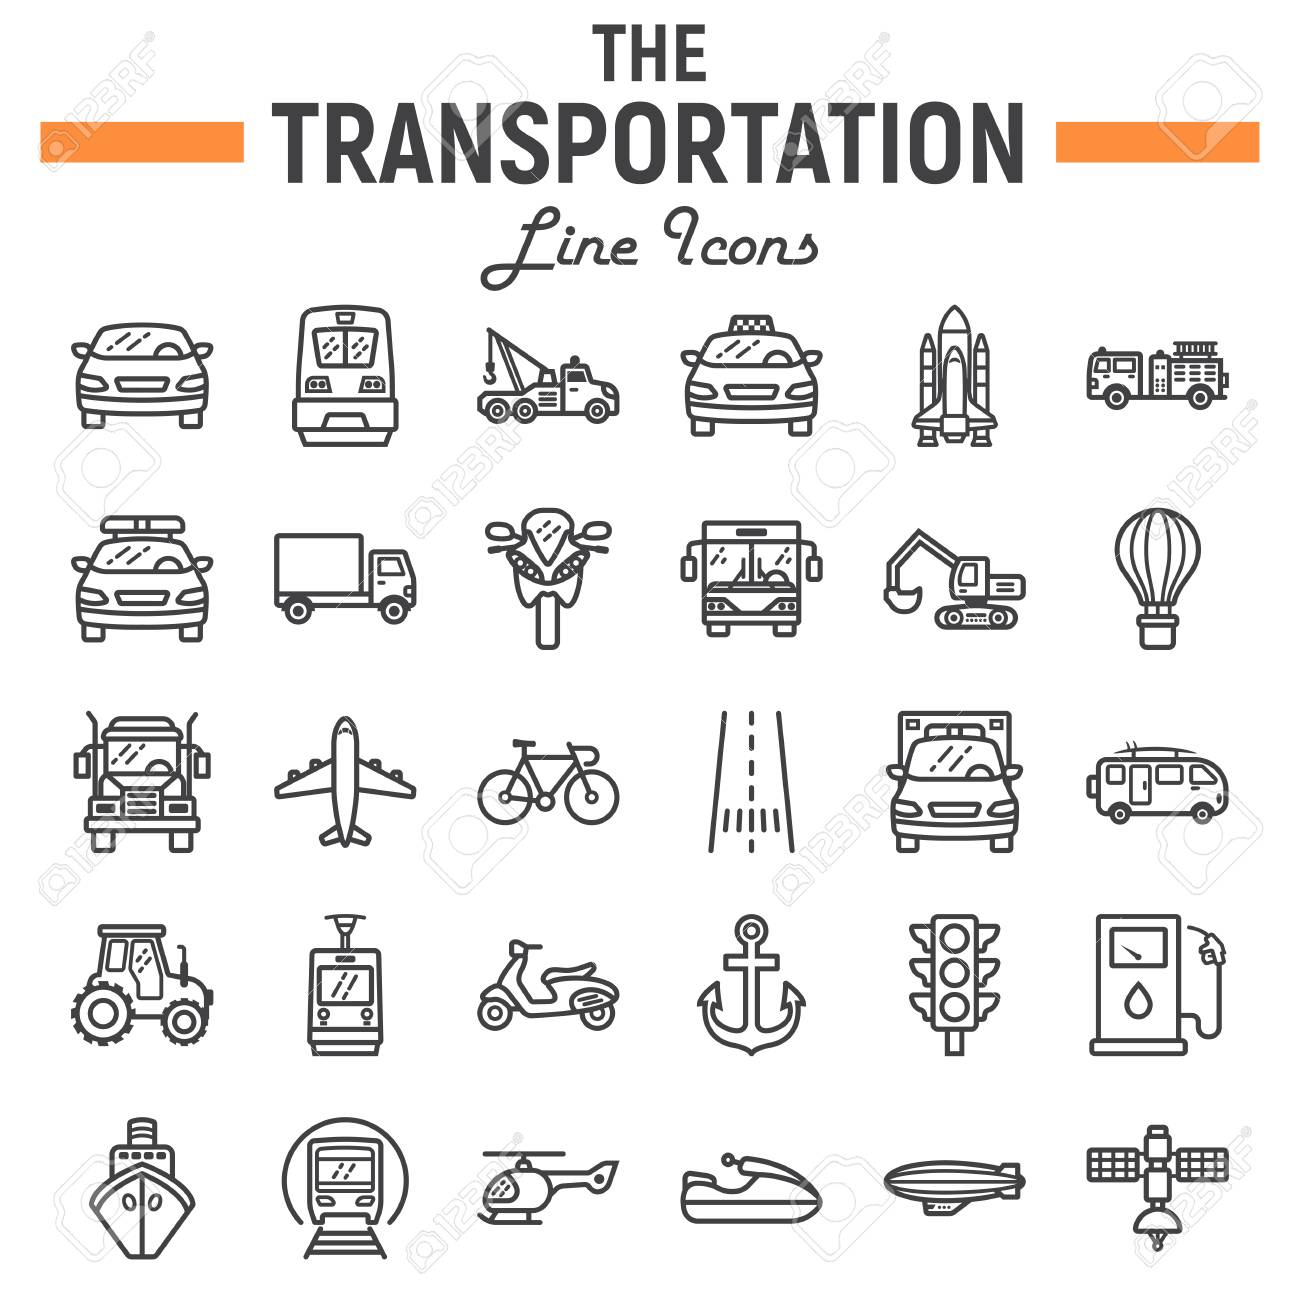 Transportation line icon set, transport symbols collection, vehicle vector sketches, logo illustrations, navigation signs linear pictograms package isolated on white background, eps 10. - 87051378